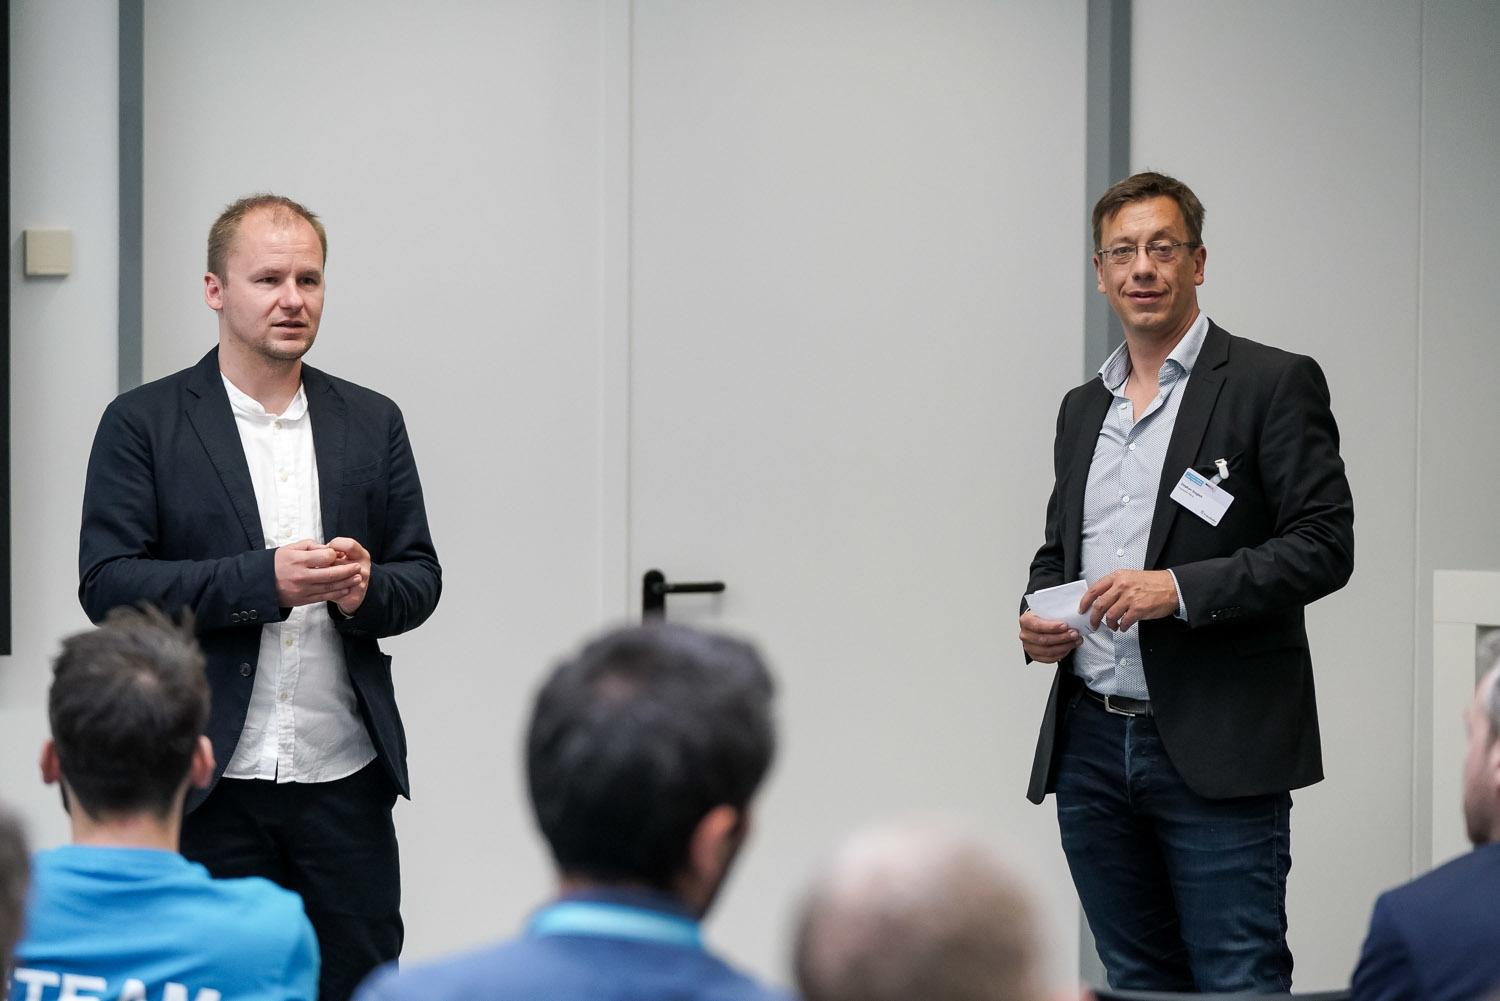 Fraunhofer FOKUS FAME MWS Media Web Symposium 2018 workshops